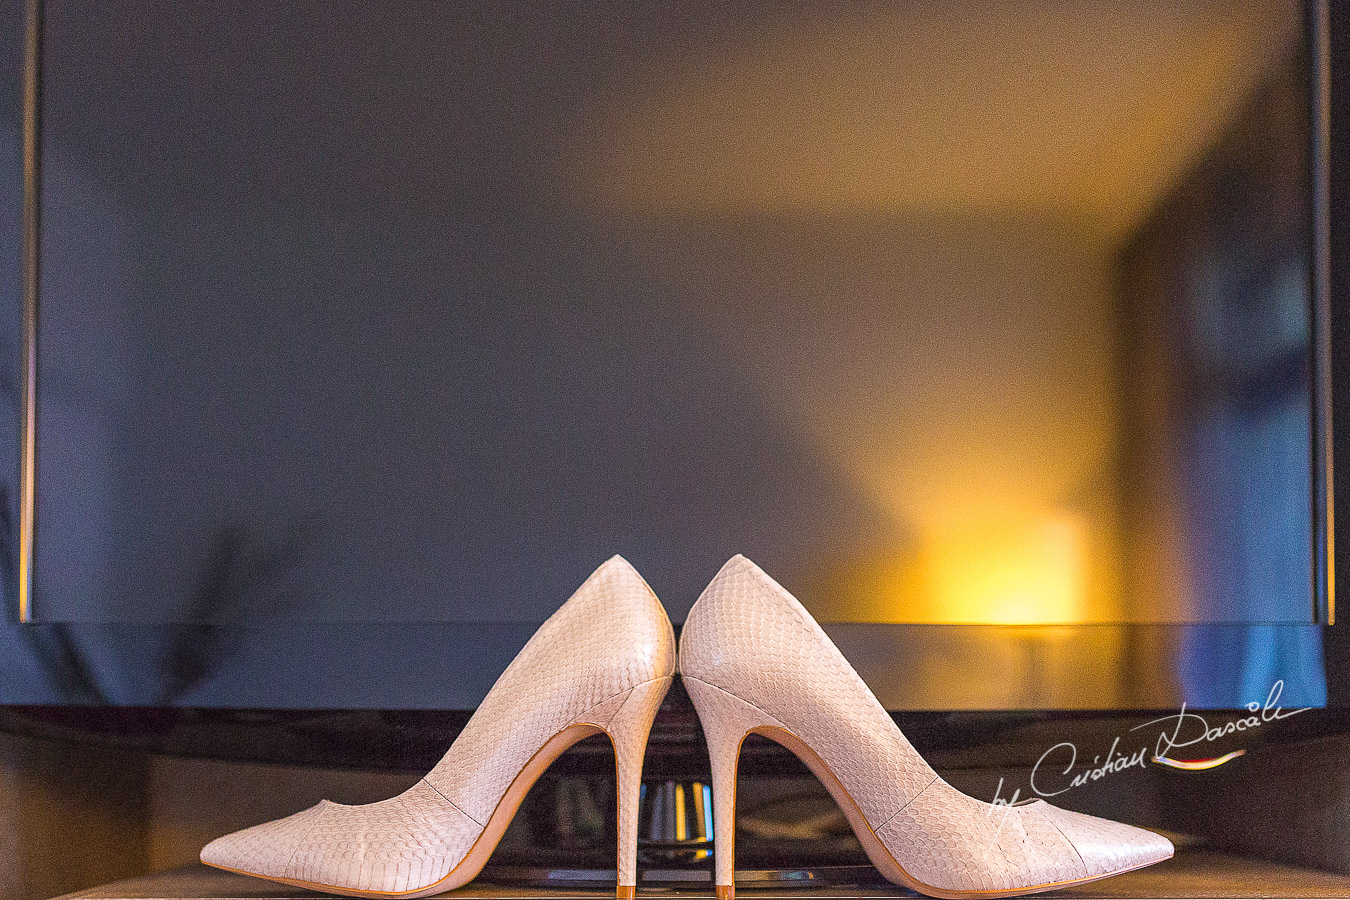 Bride`s shoes captured at Londa Hotel in Limassol, Cyprus.